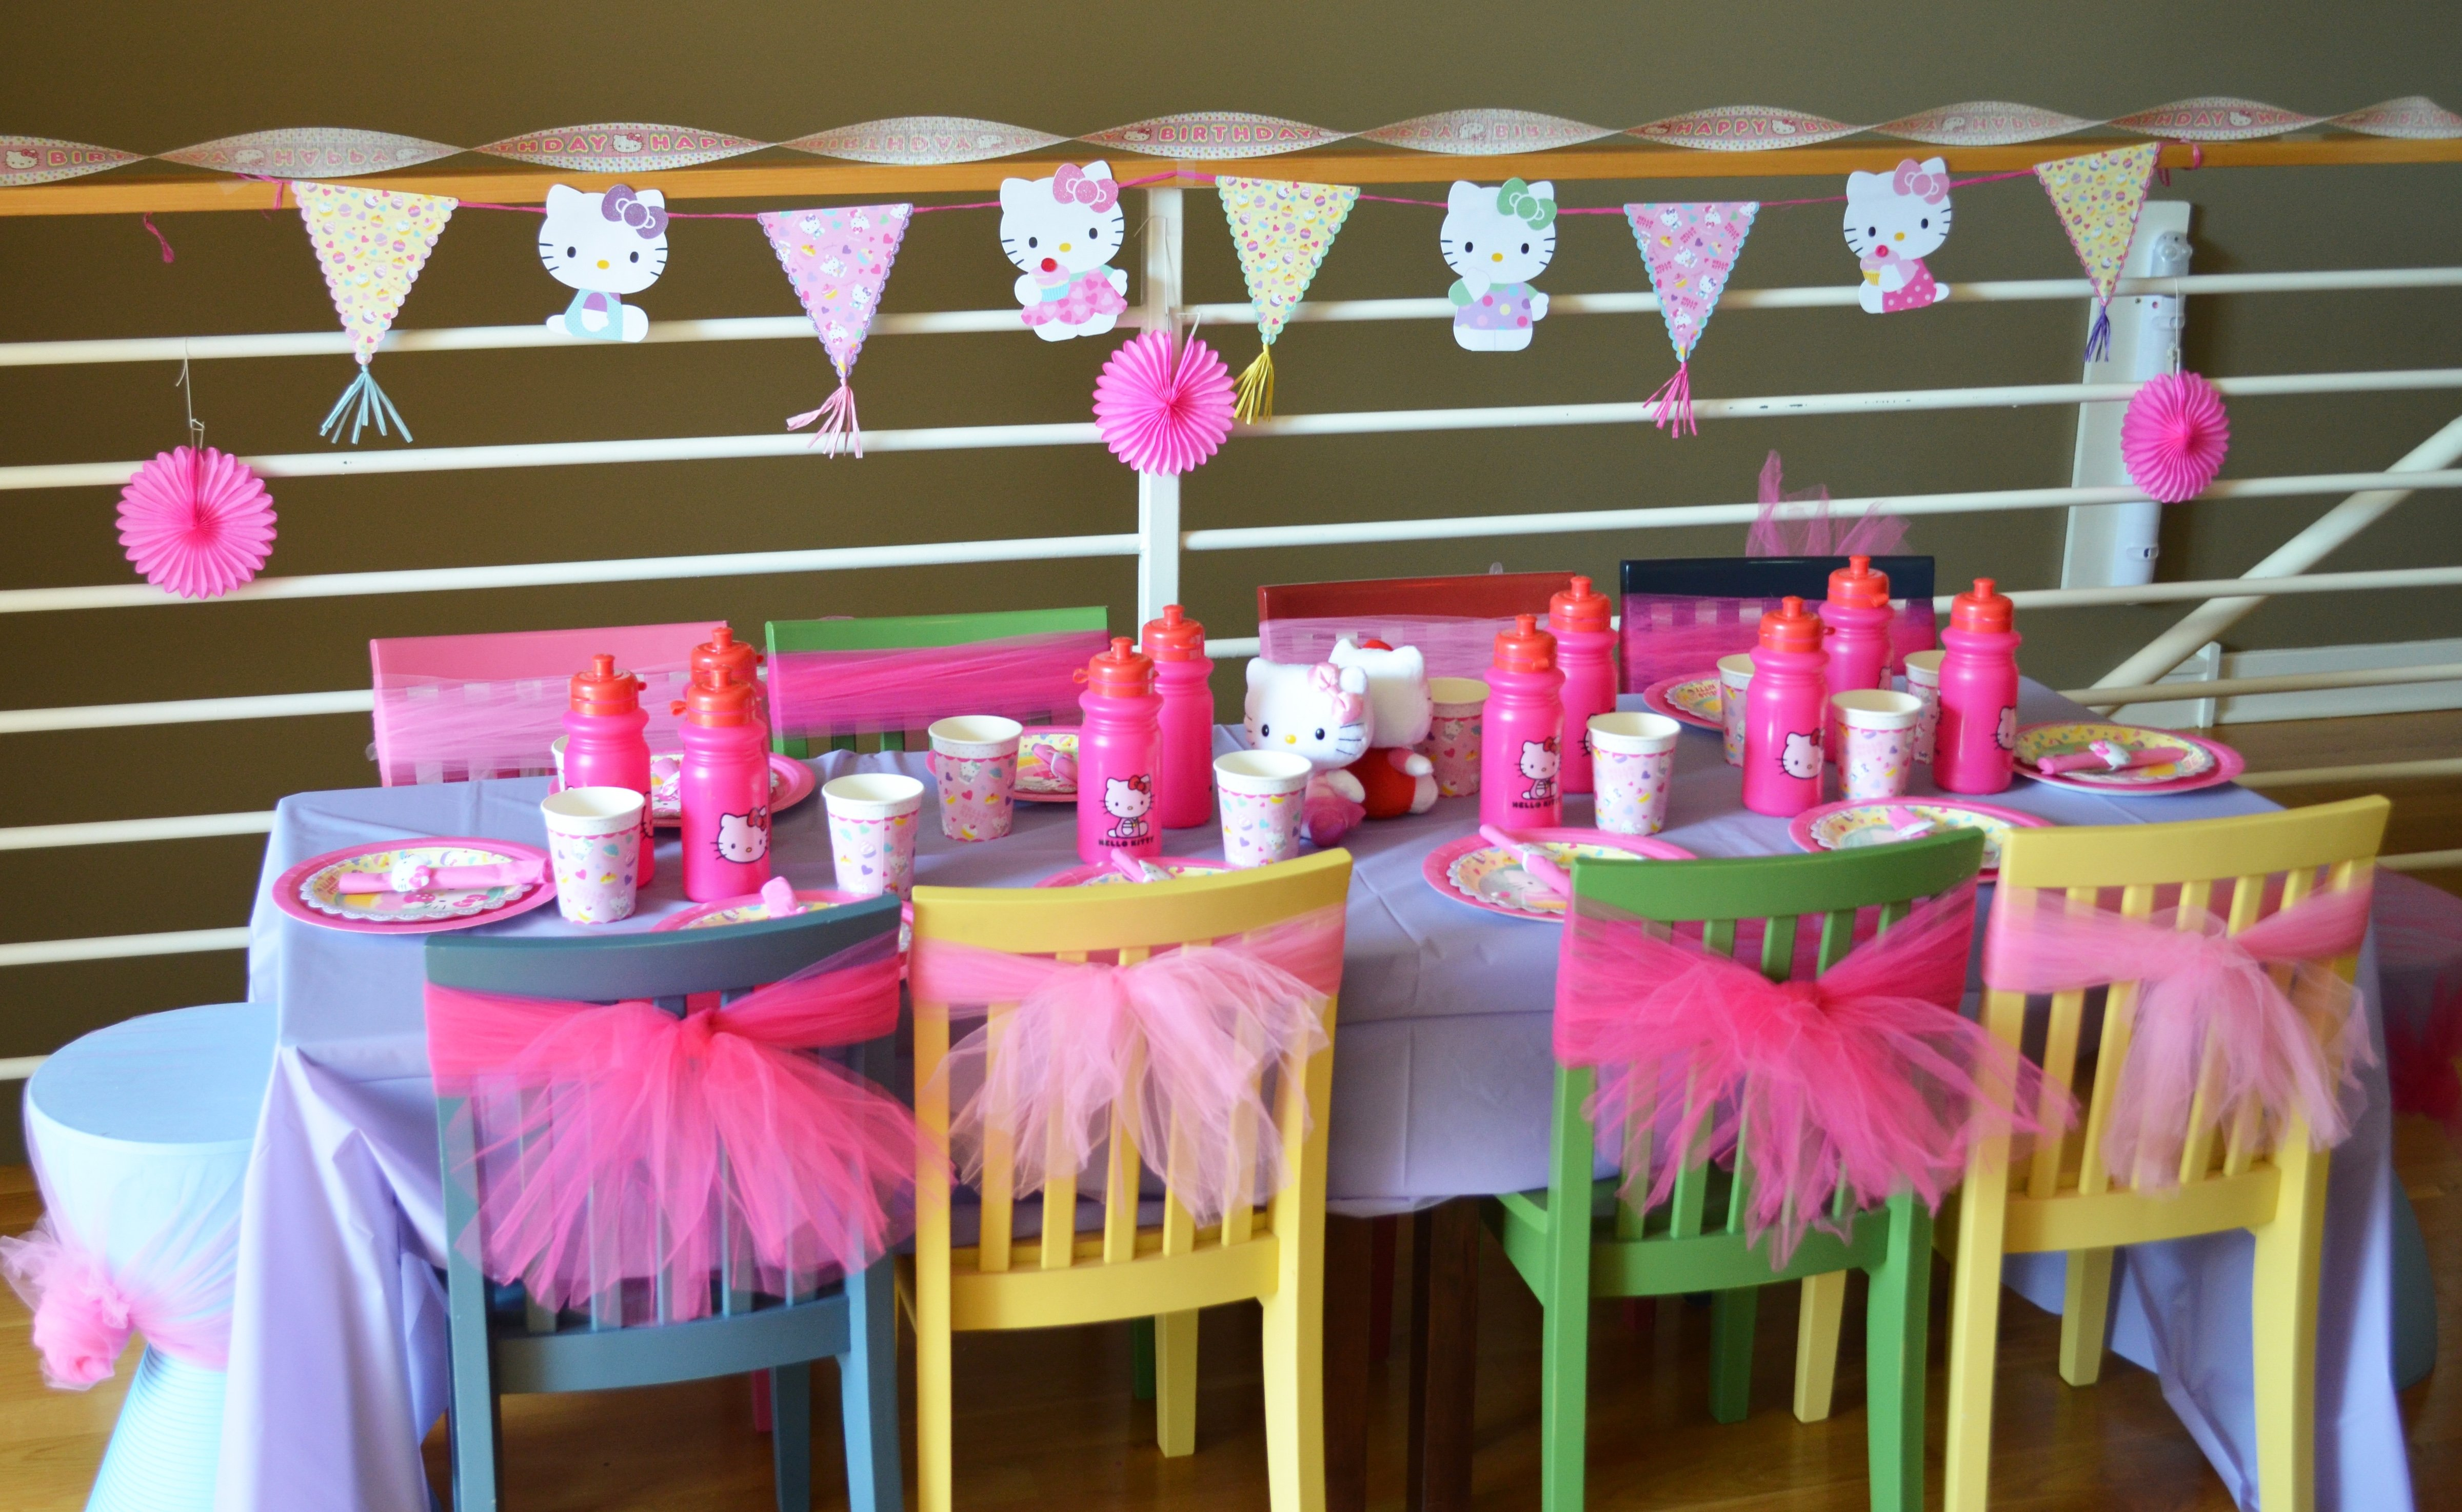 10 Nice Birthday Party Ideas For A 10 Year Old Girl a how to hello kitty birthday party hello kitty birthday kitty 9 2020